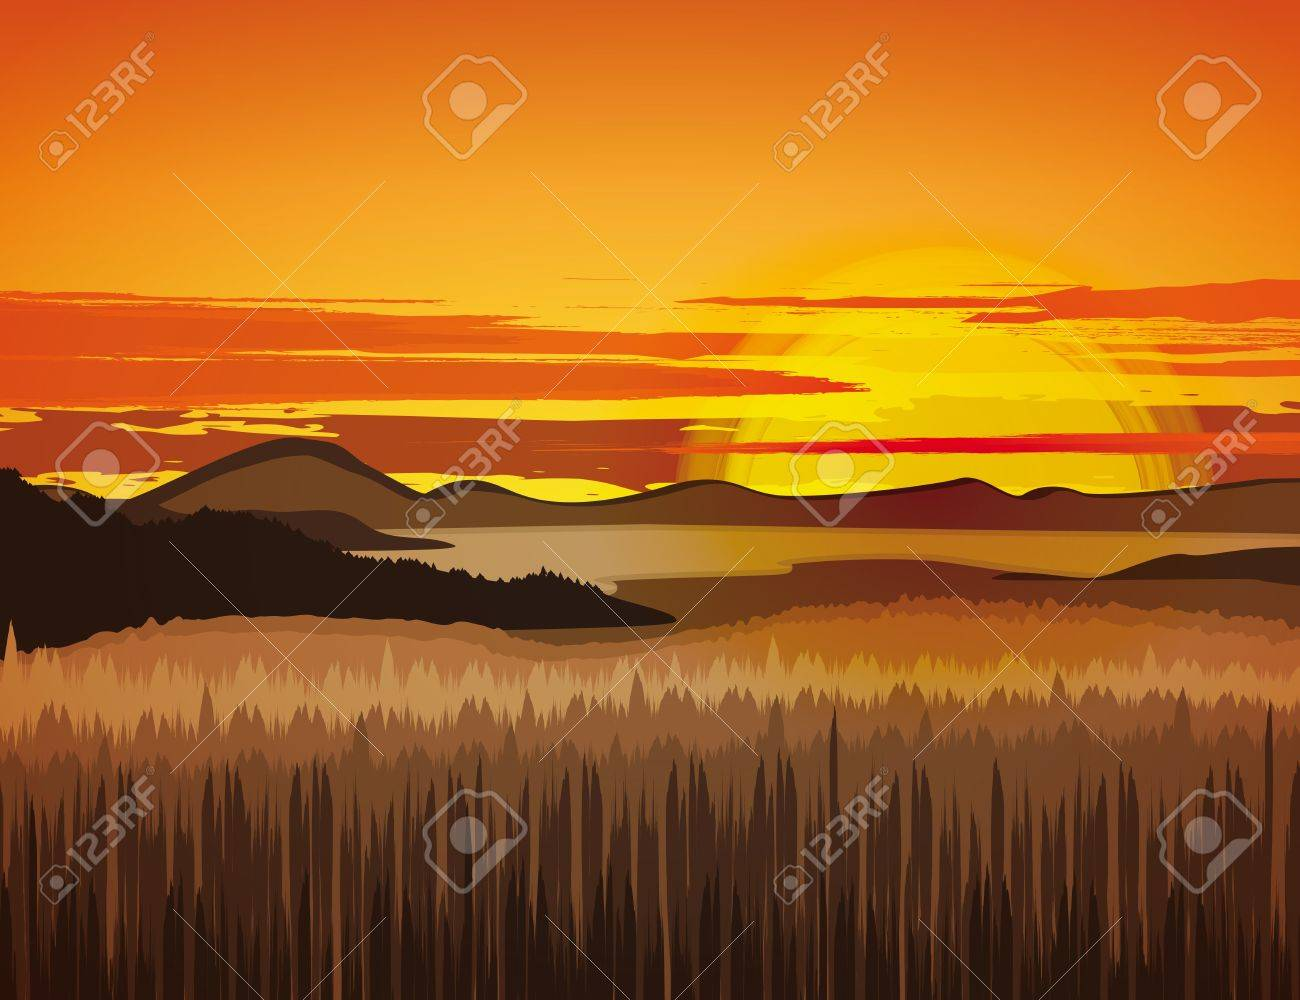 Landscape with rocky mountains at sunset Stock Vector - 18803120